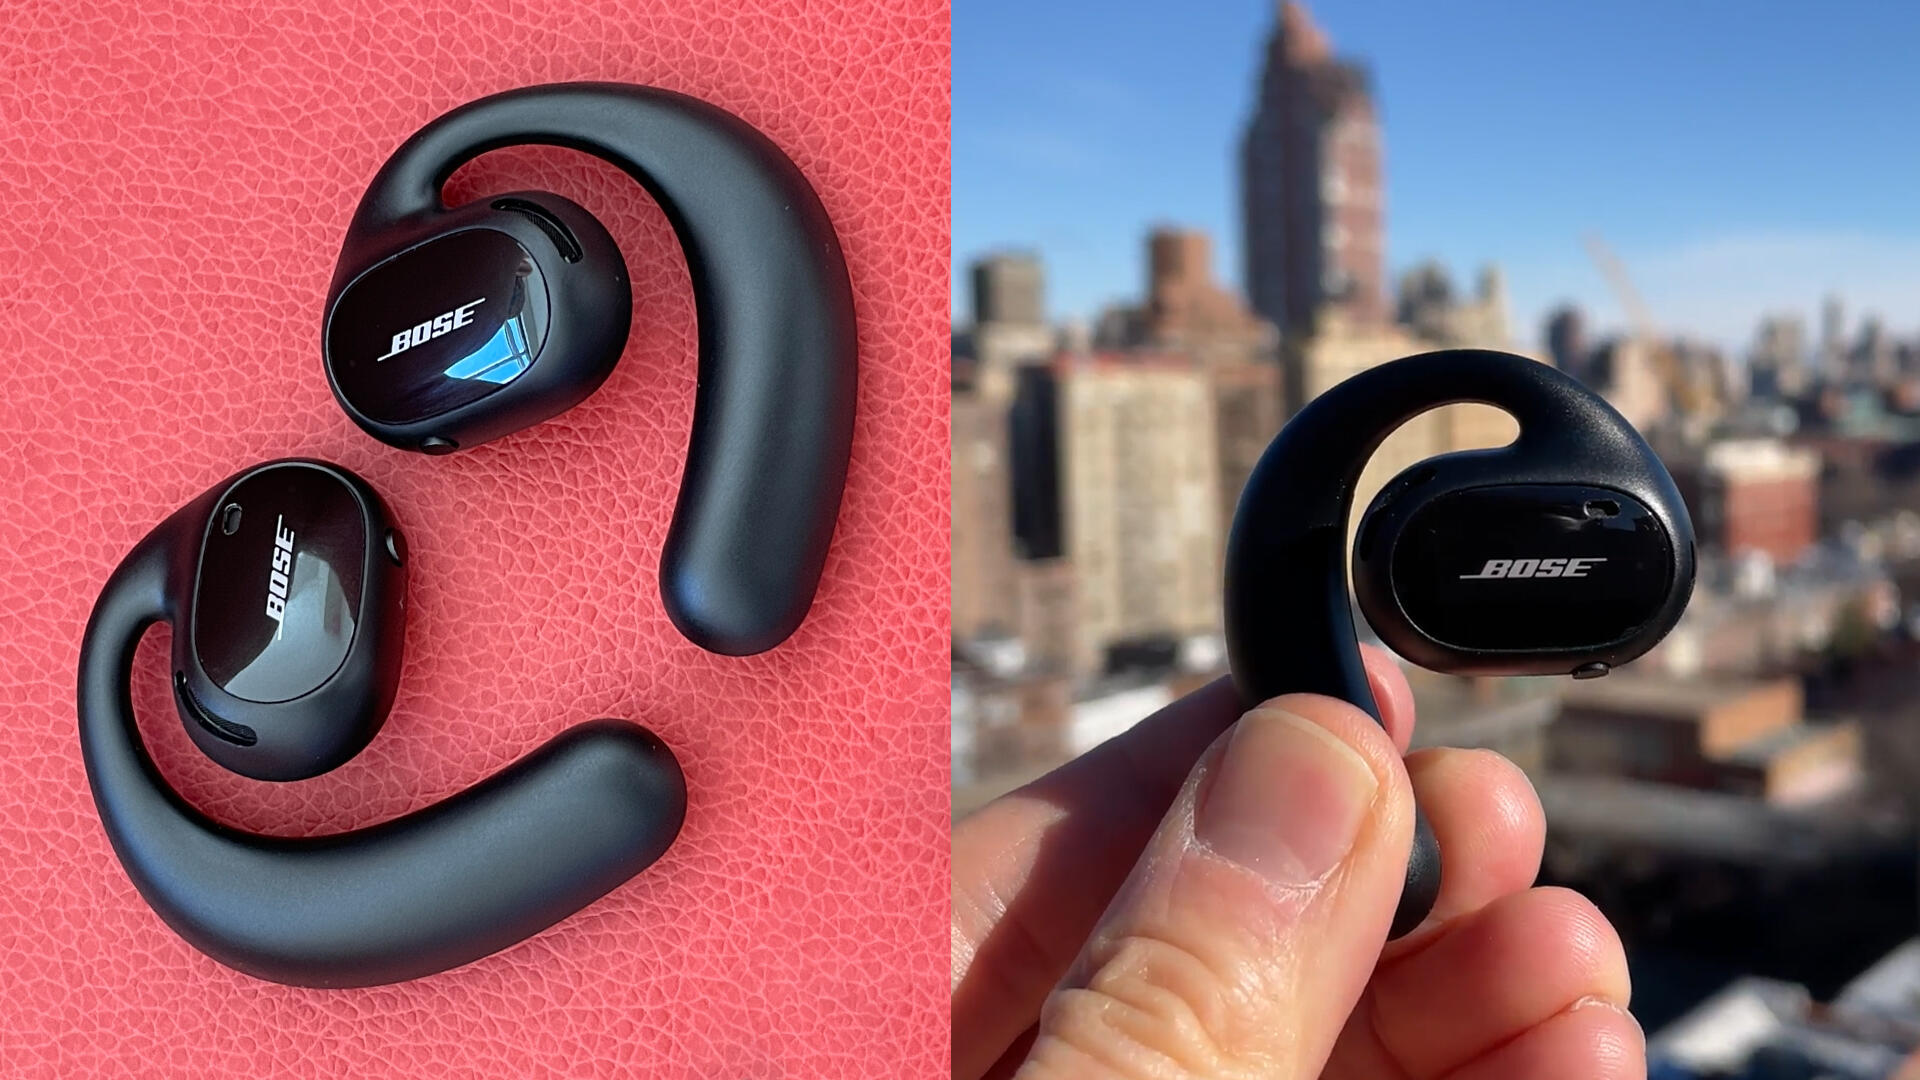 Video: Bose Sport Open Earbuds review: Quirky design, surprising sound